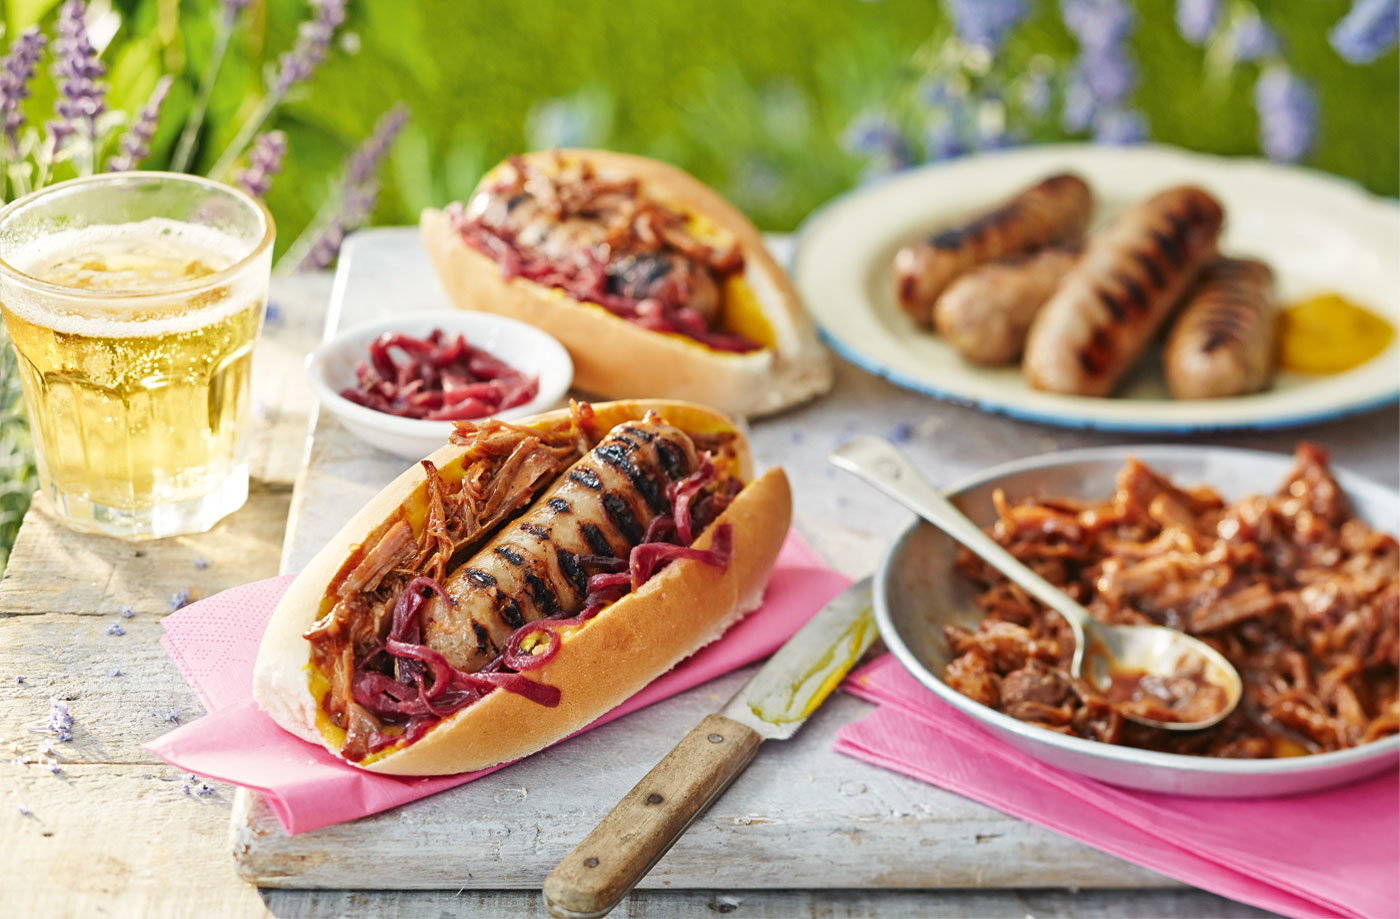 Hot dogs with pulled pork and a red onion relish recipe